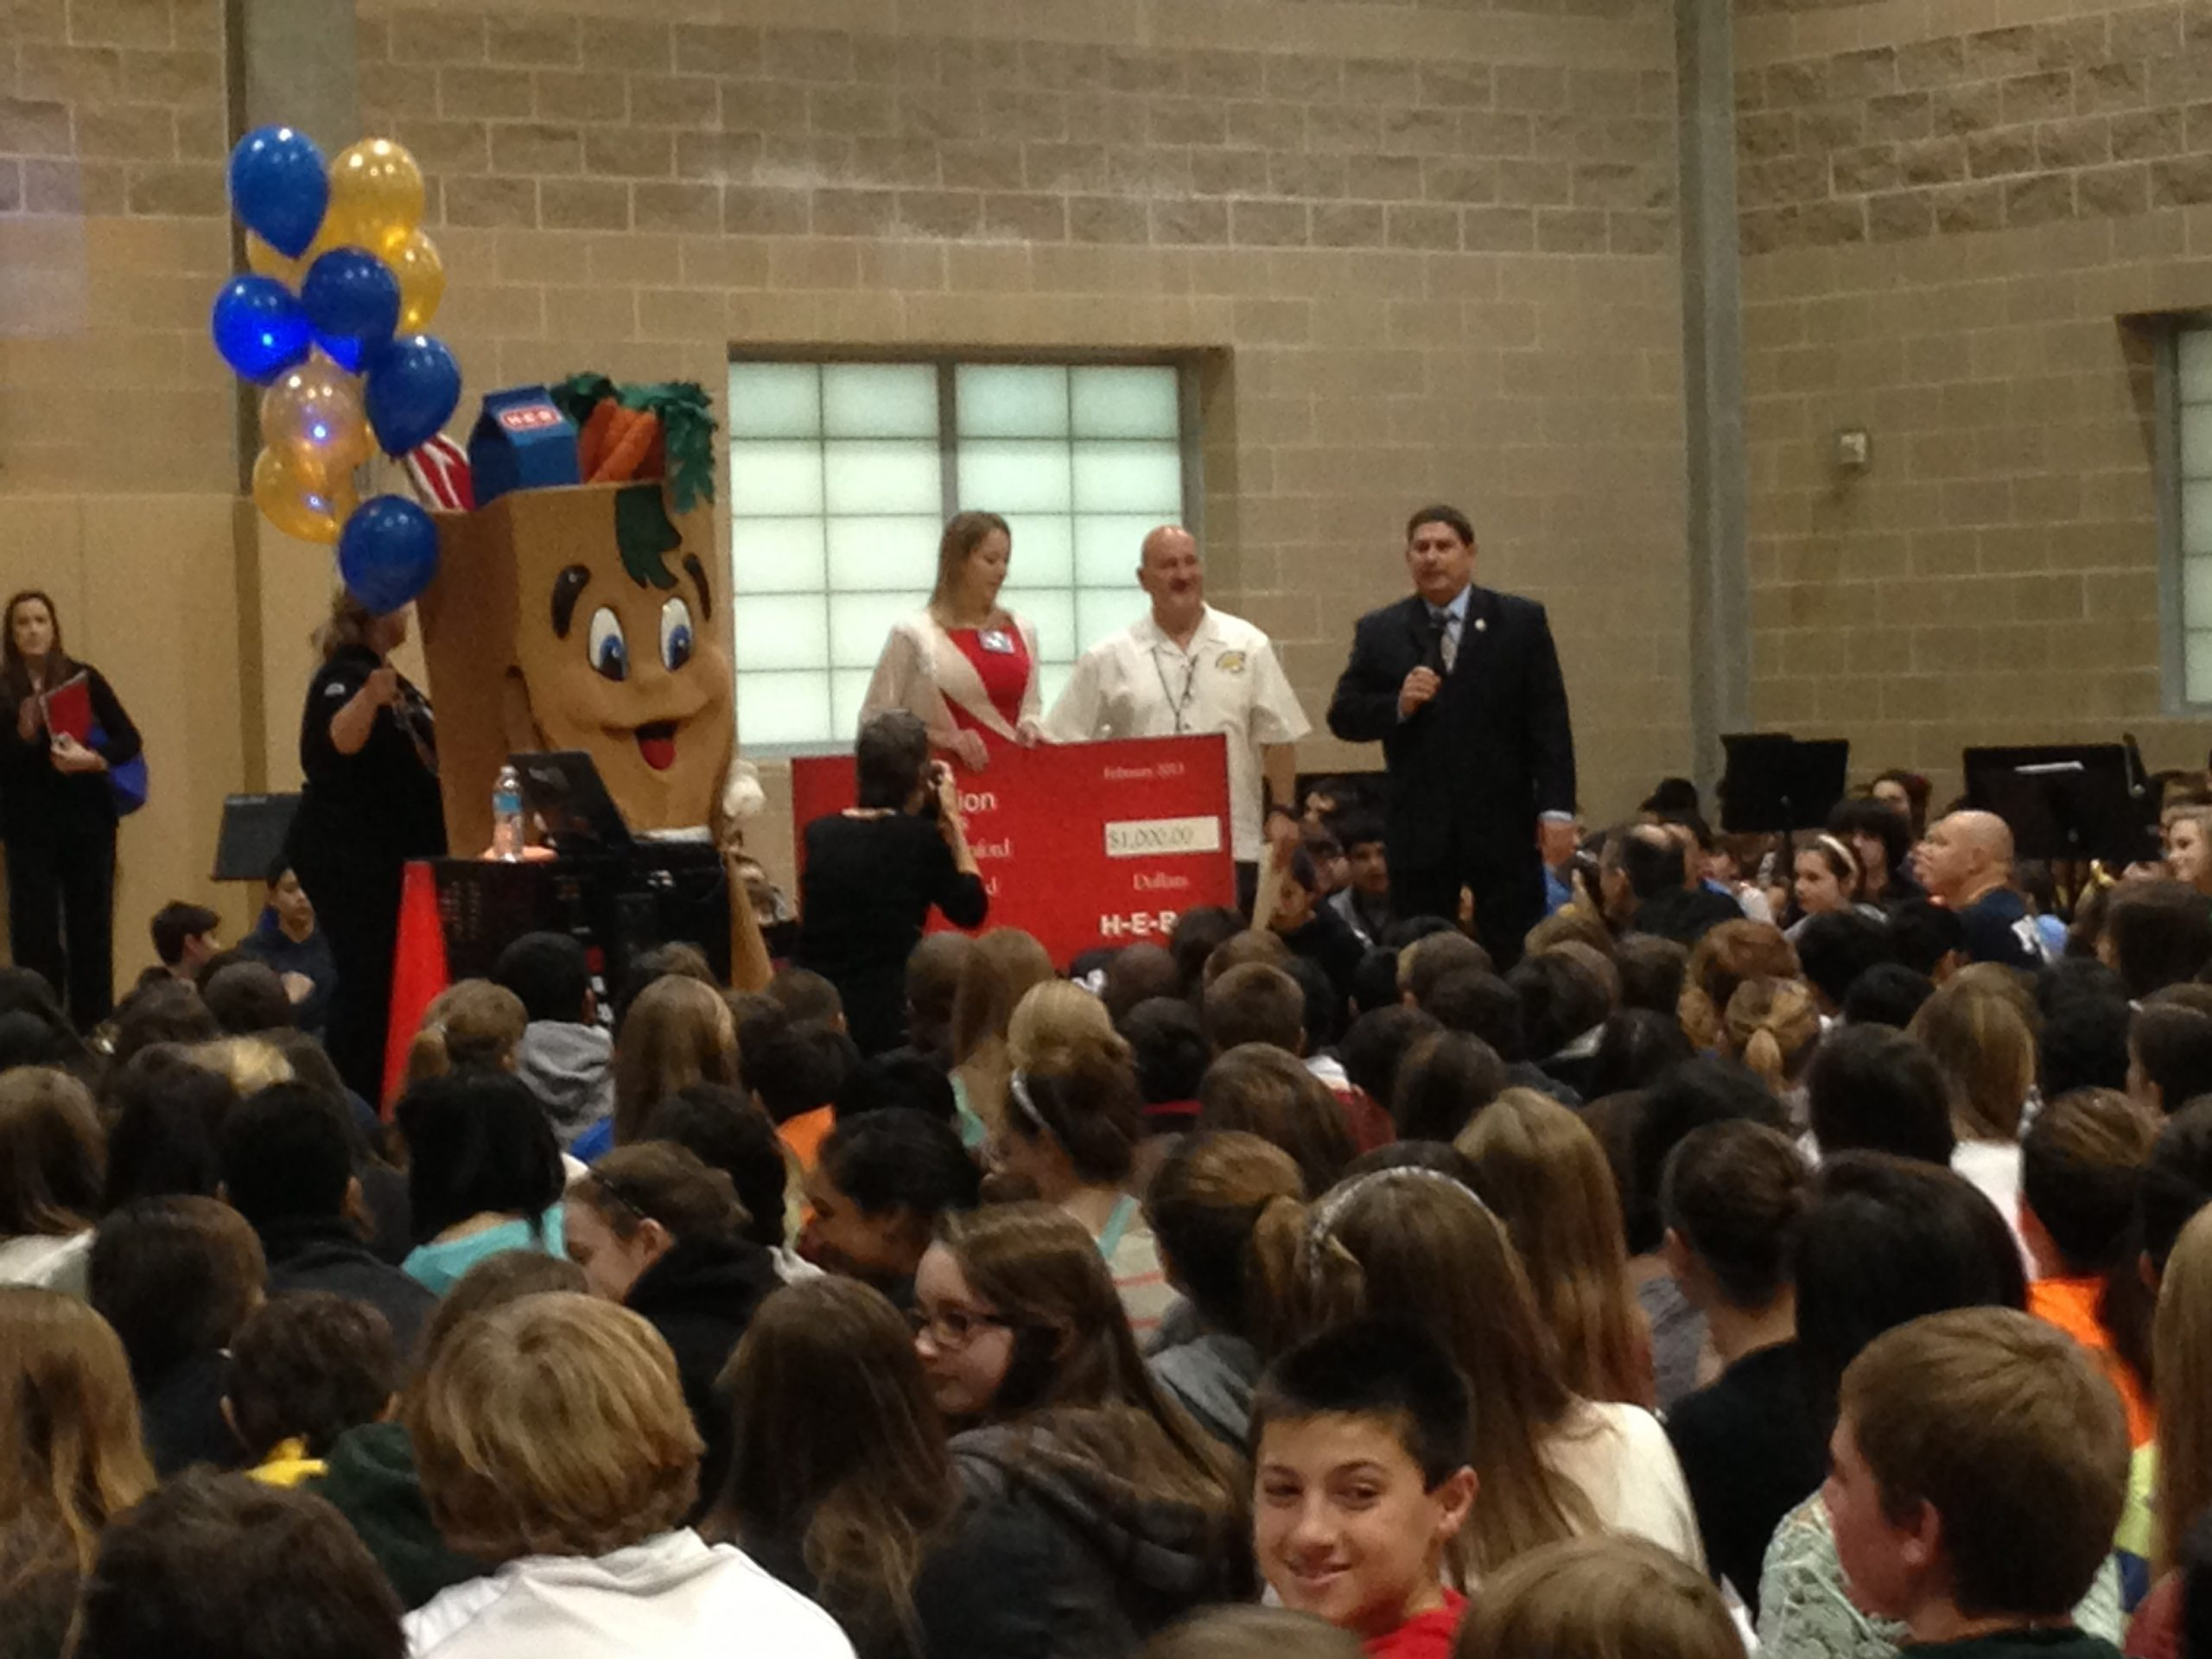 The HEB Buddy and Kimberly Harle present an H-E-B Excellence in Education check to award finalist Dr. Barry Lanford while Superintendent Brian Gottardy expresses his appreciation. A see of middle school students await another chance to cheer. Photo by Bekah McNeel.